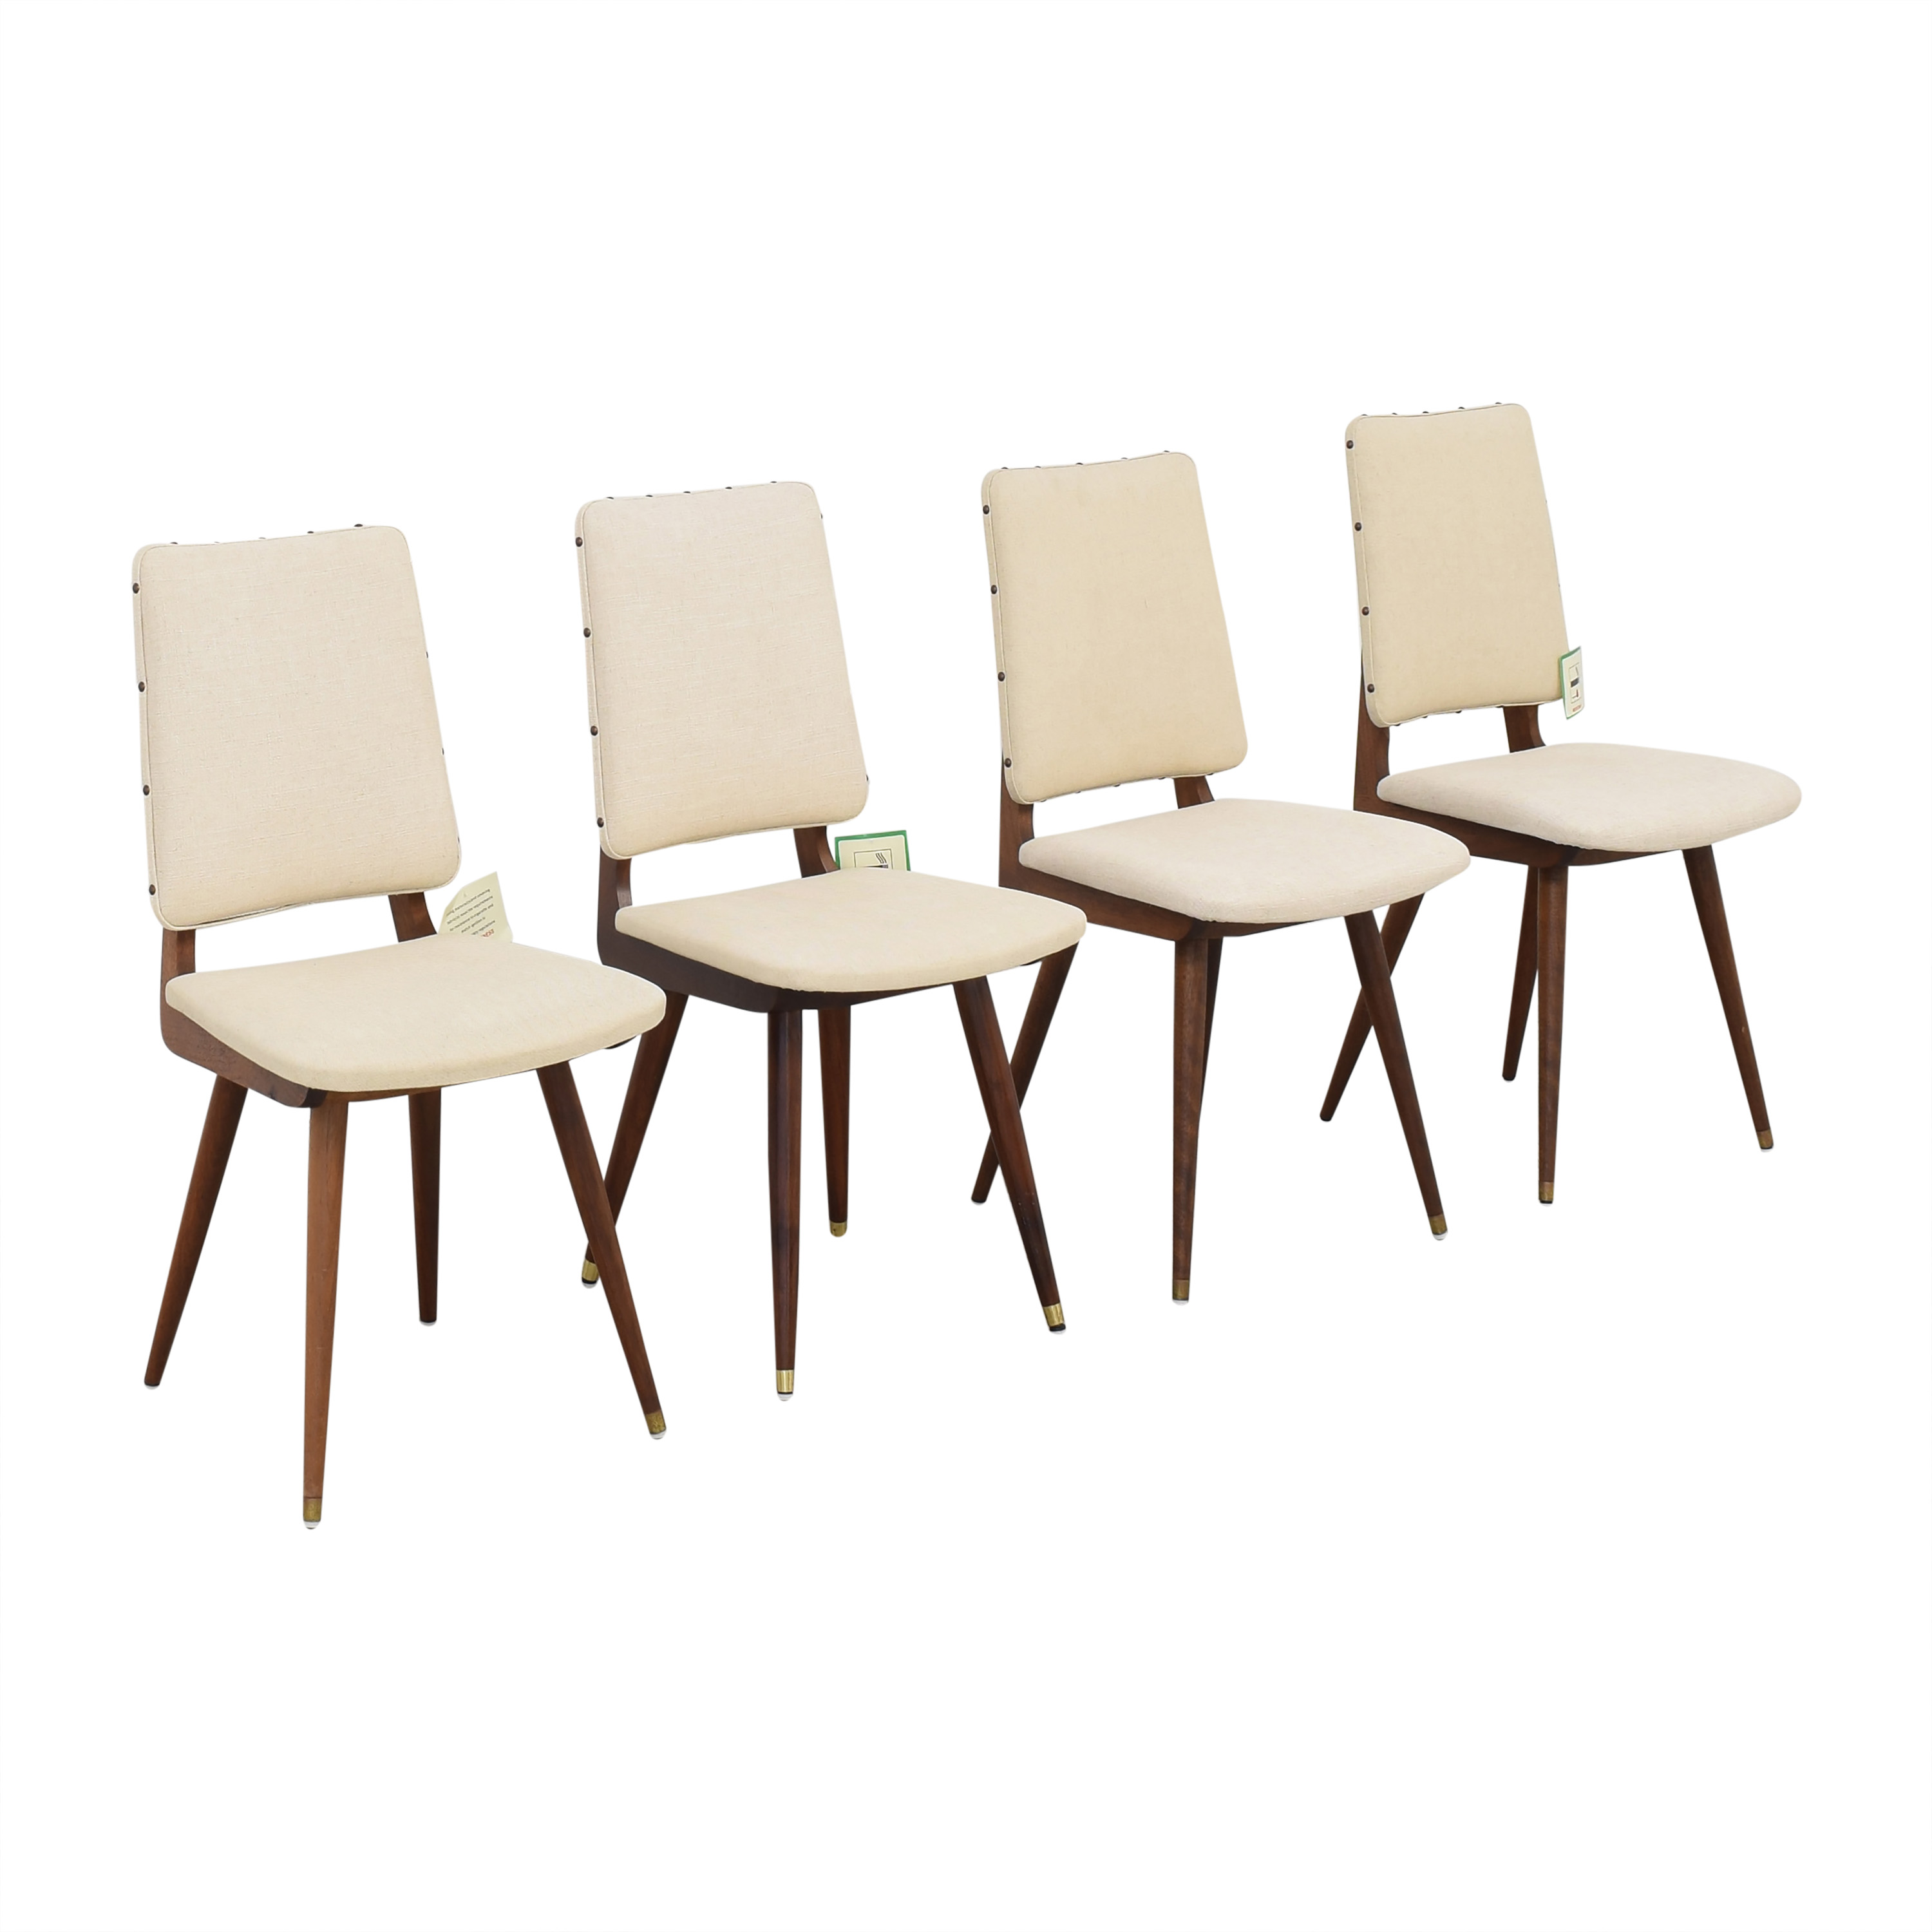 buy Jonathan Adler Camille Dining Chairs Jonathan Adler Chairs